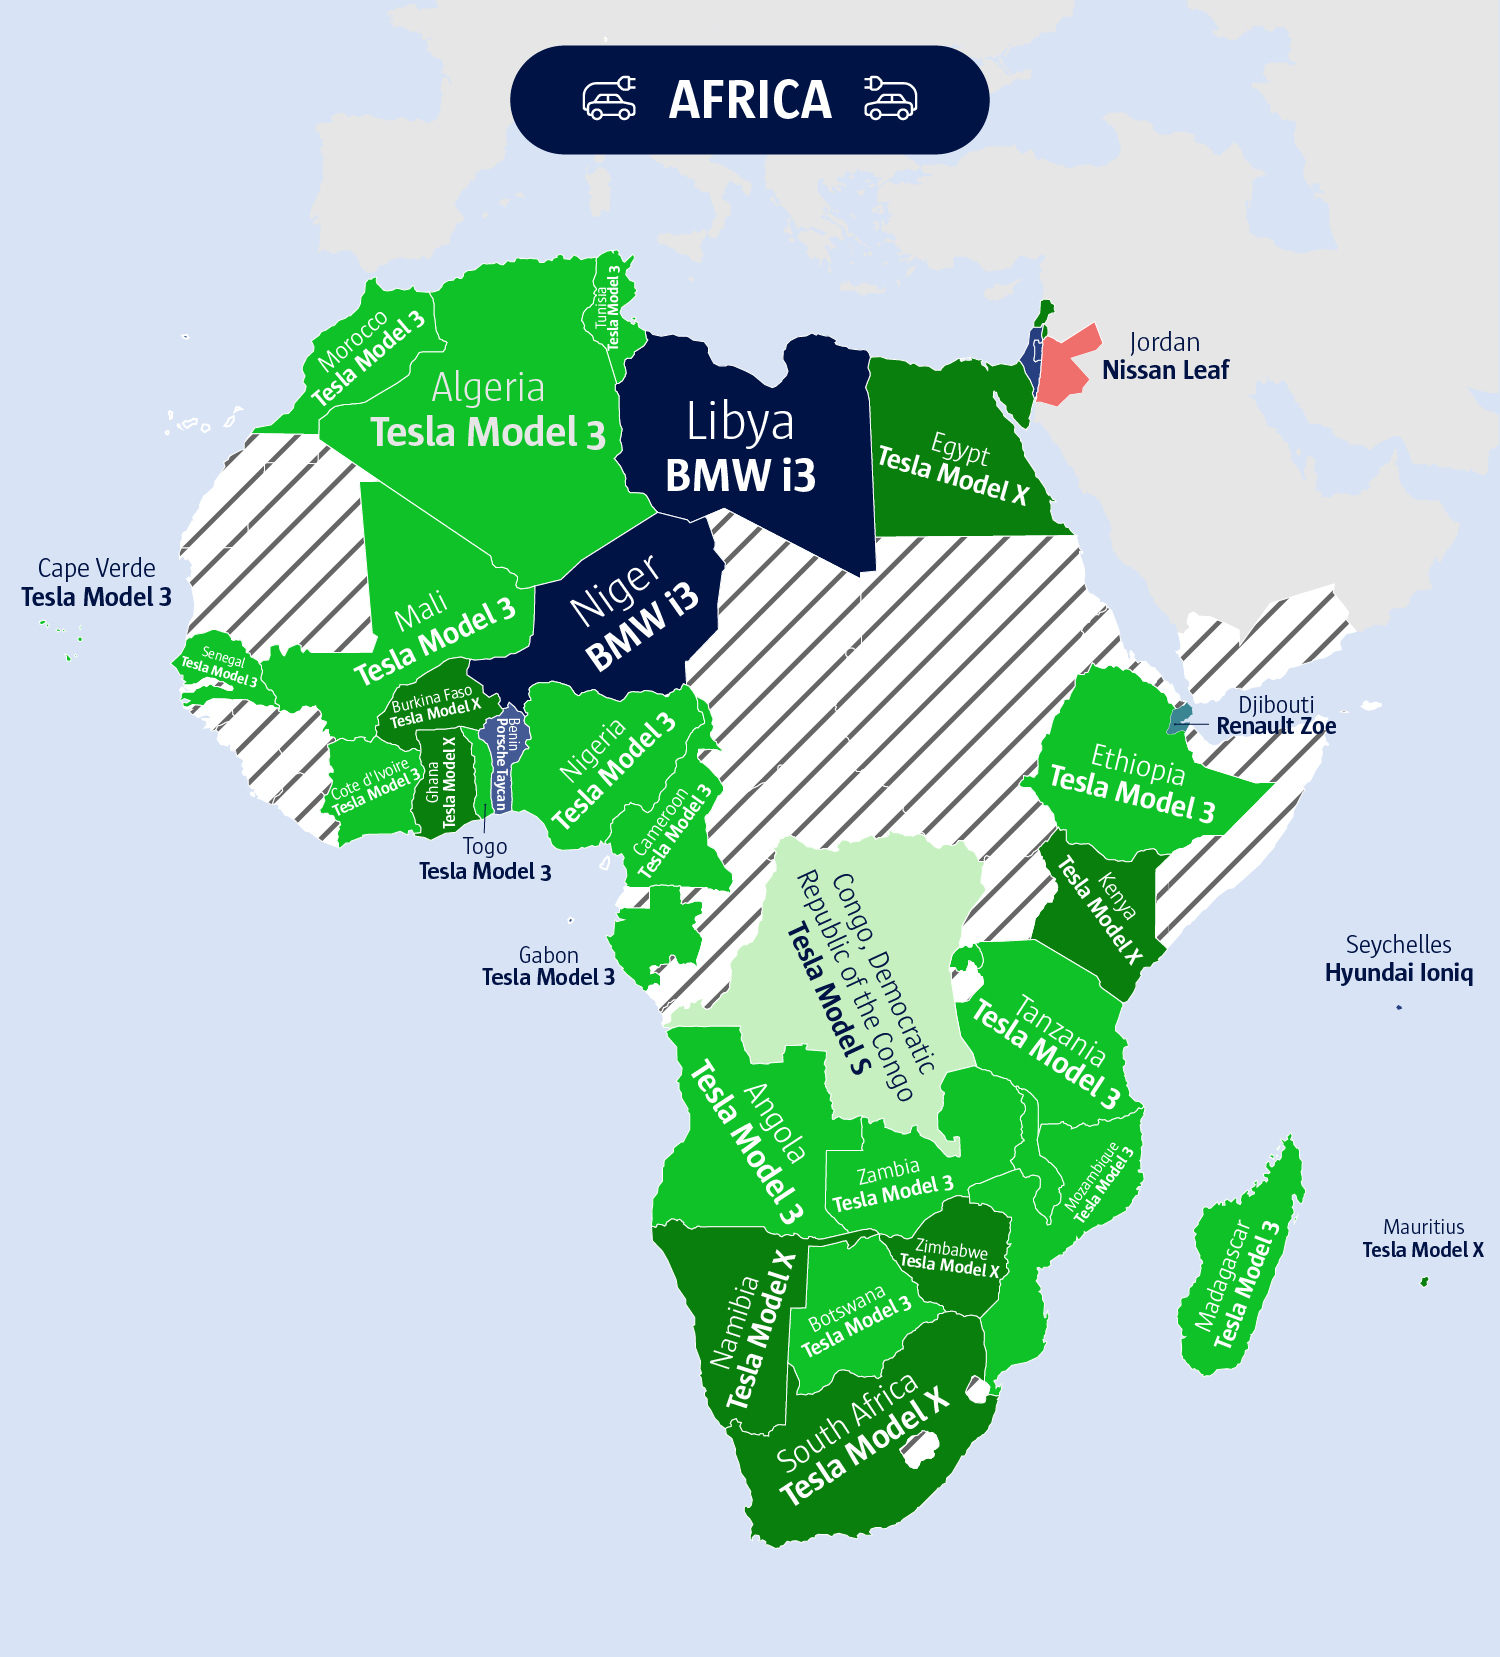 An image showing Africa's electric vehicles.